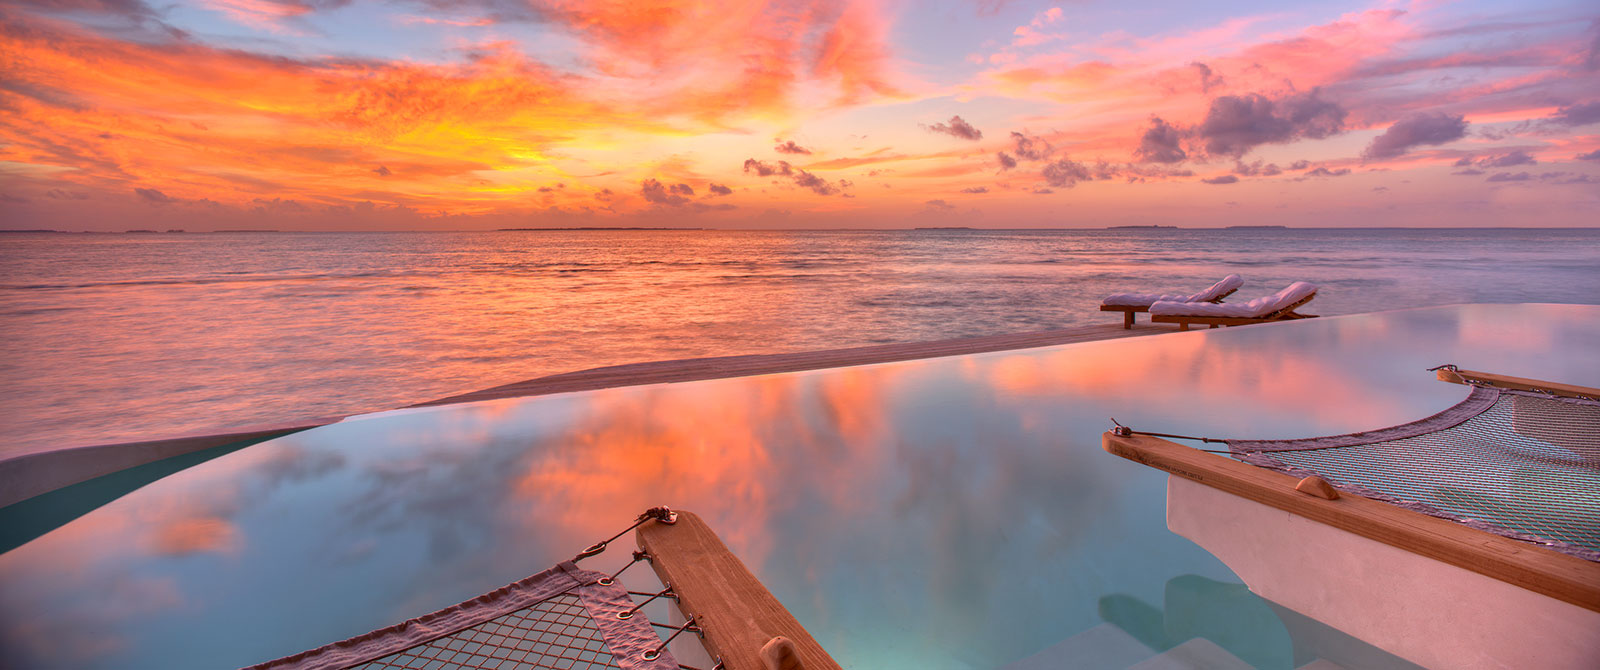 Soneva Jani Resort - Sunset View from 1 Bedroom Water Retreat with Slide - Maldives Overwater Bungalow Vacation